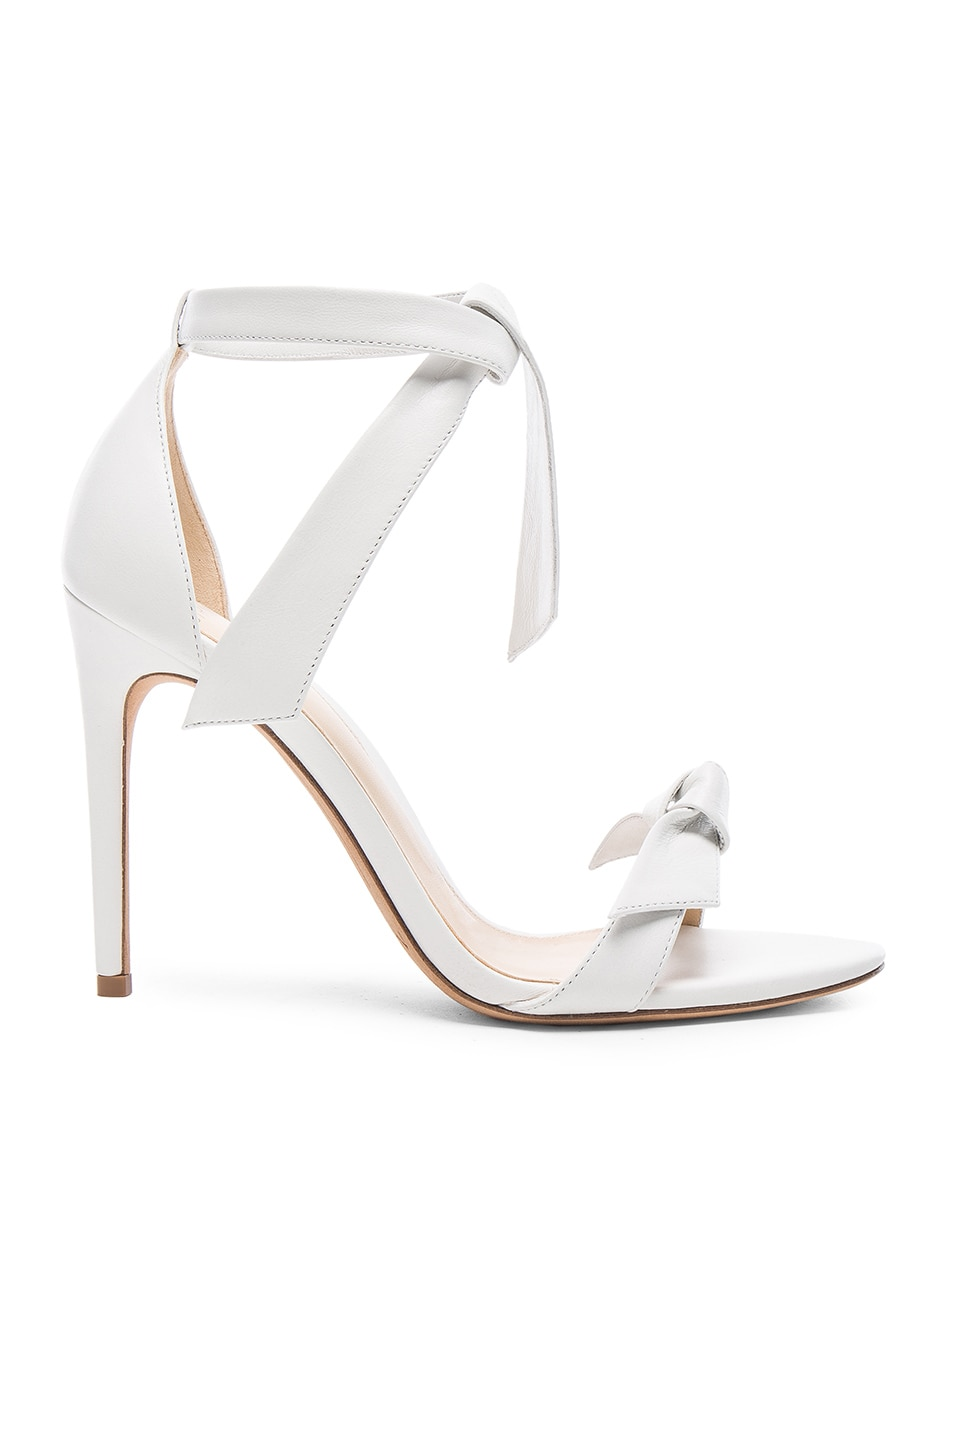 Clarita Double Bow White Leather Sandals White